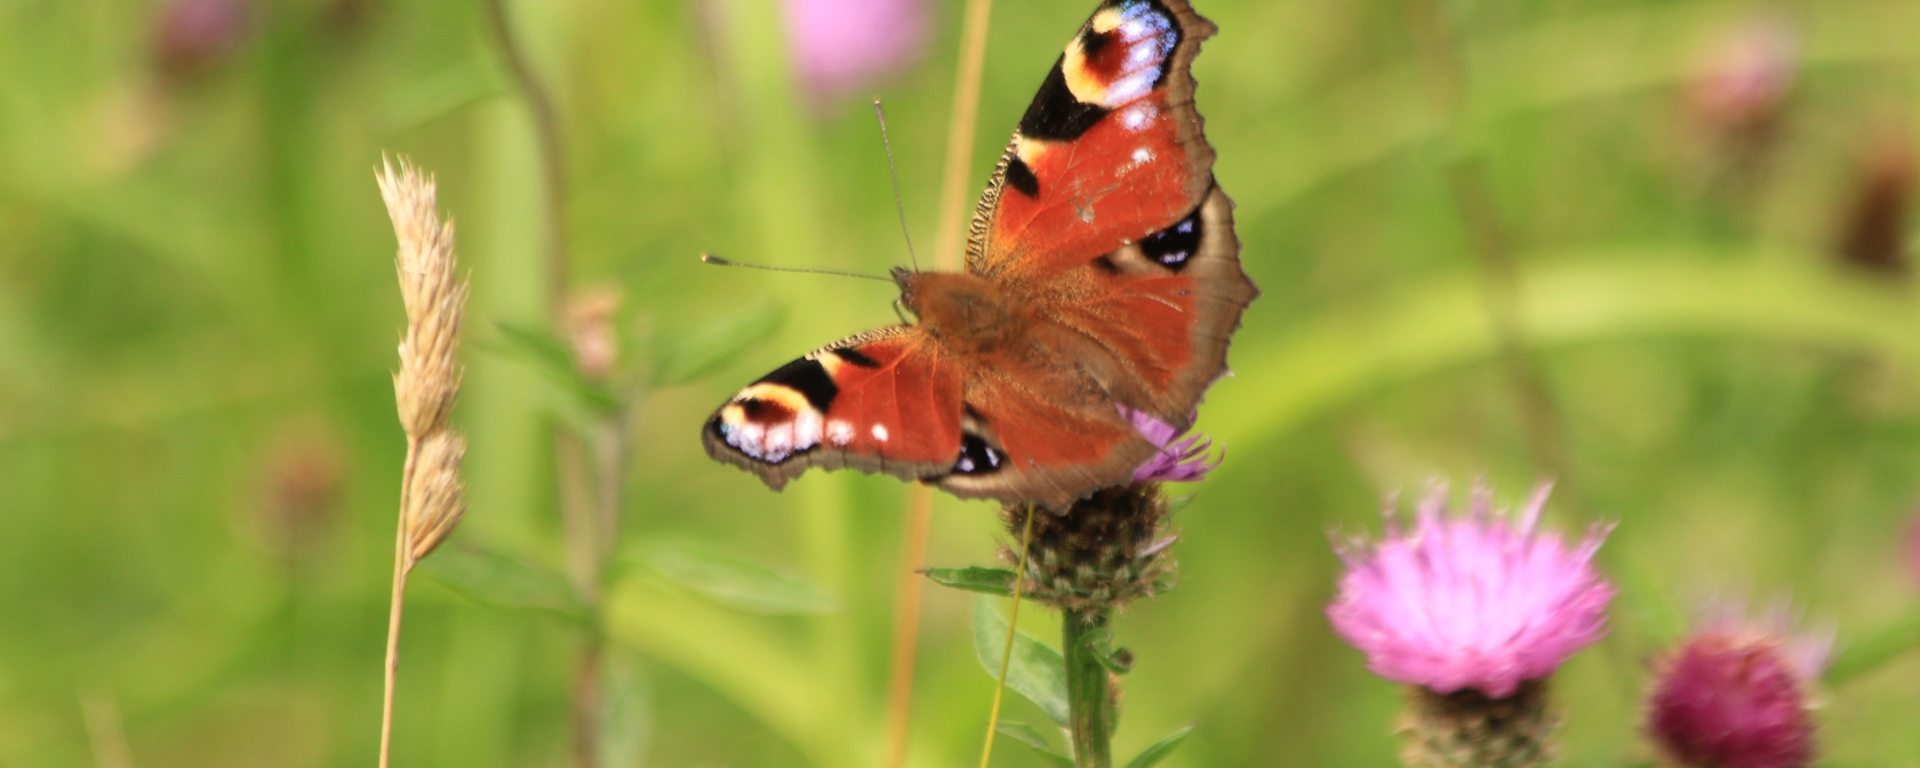 Peacock butterfly image credit Andrew Bladon